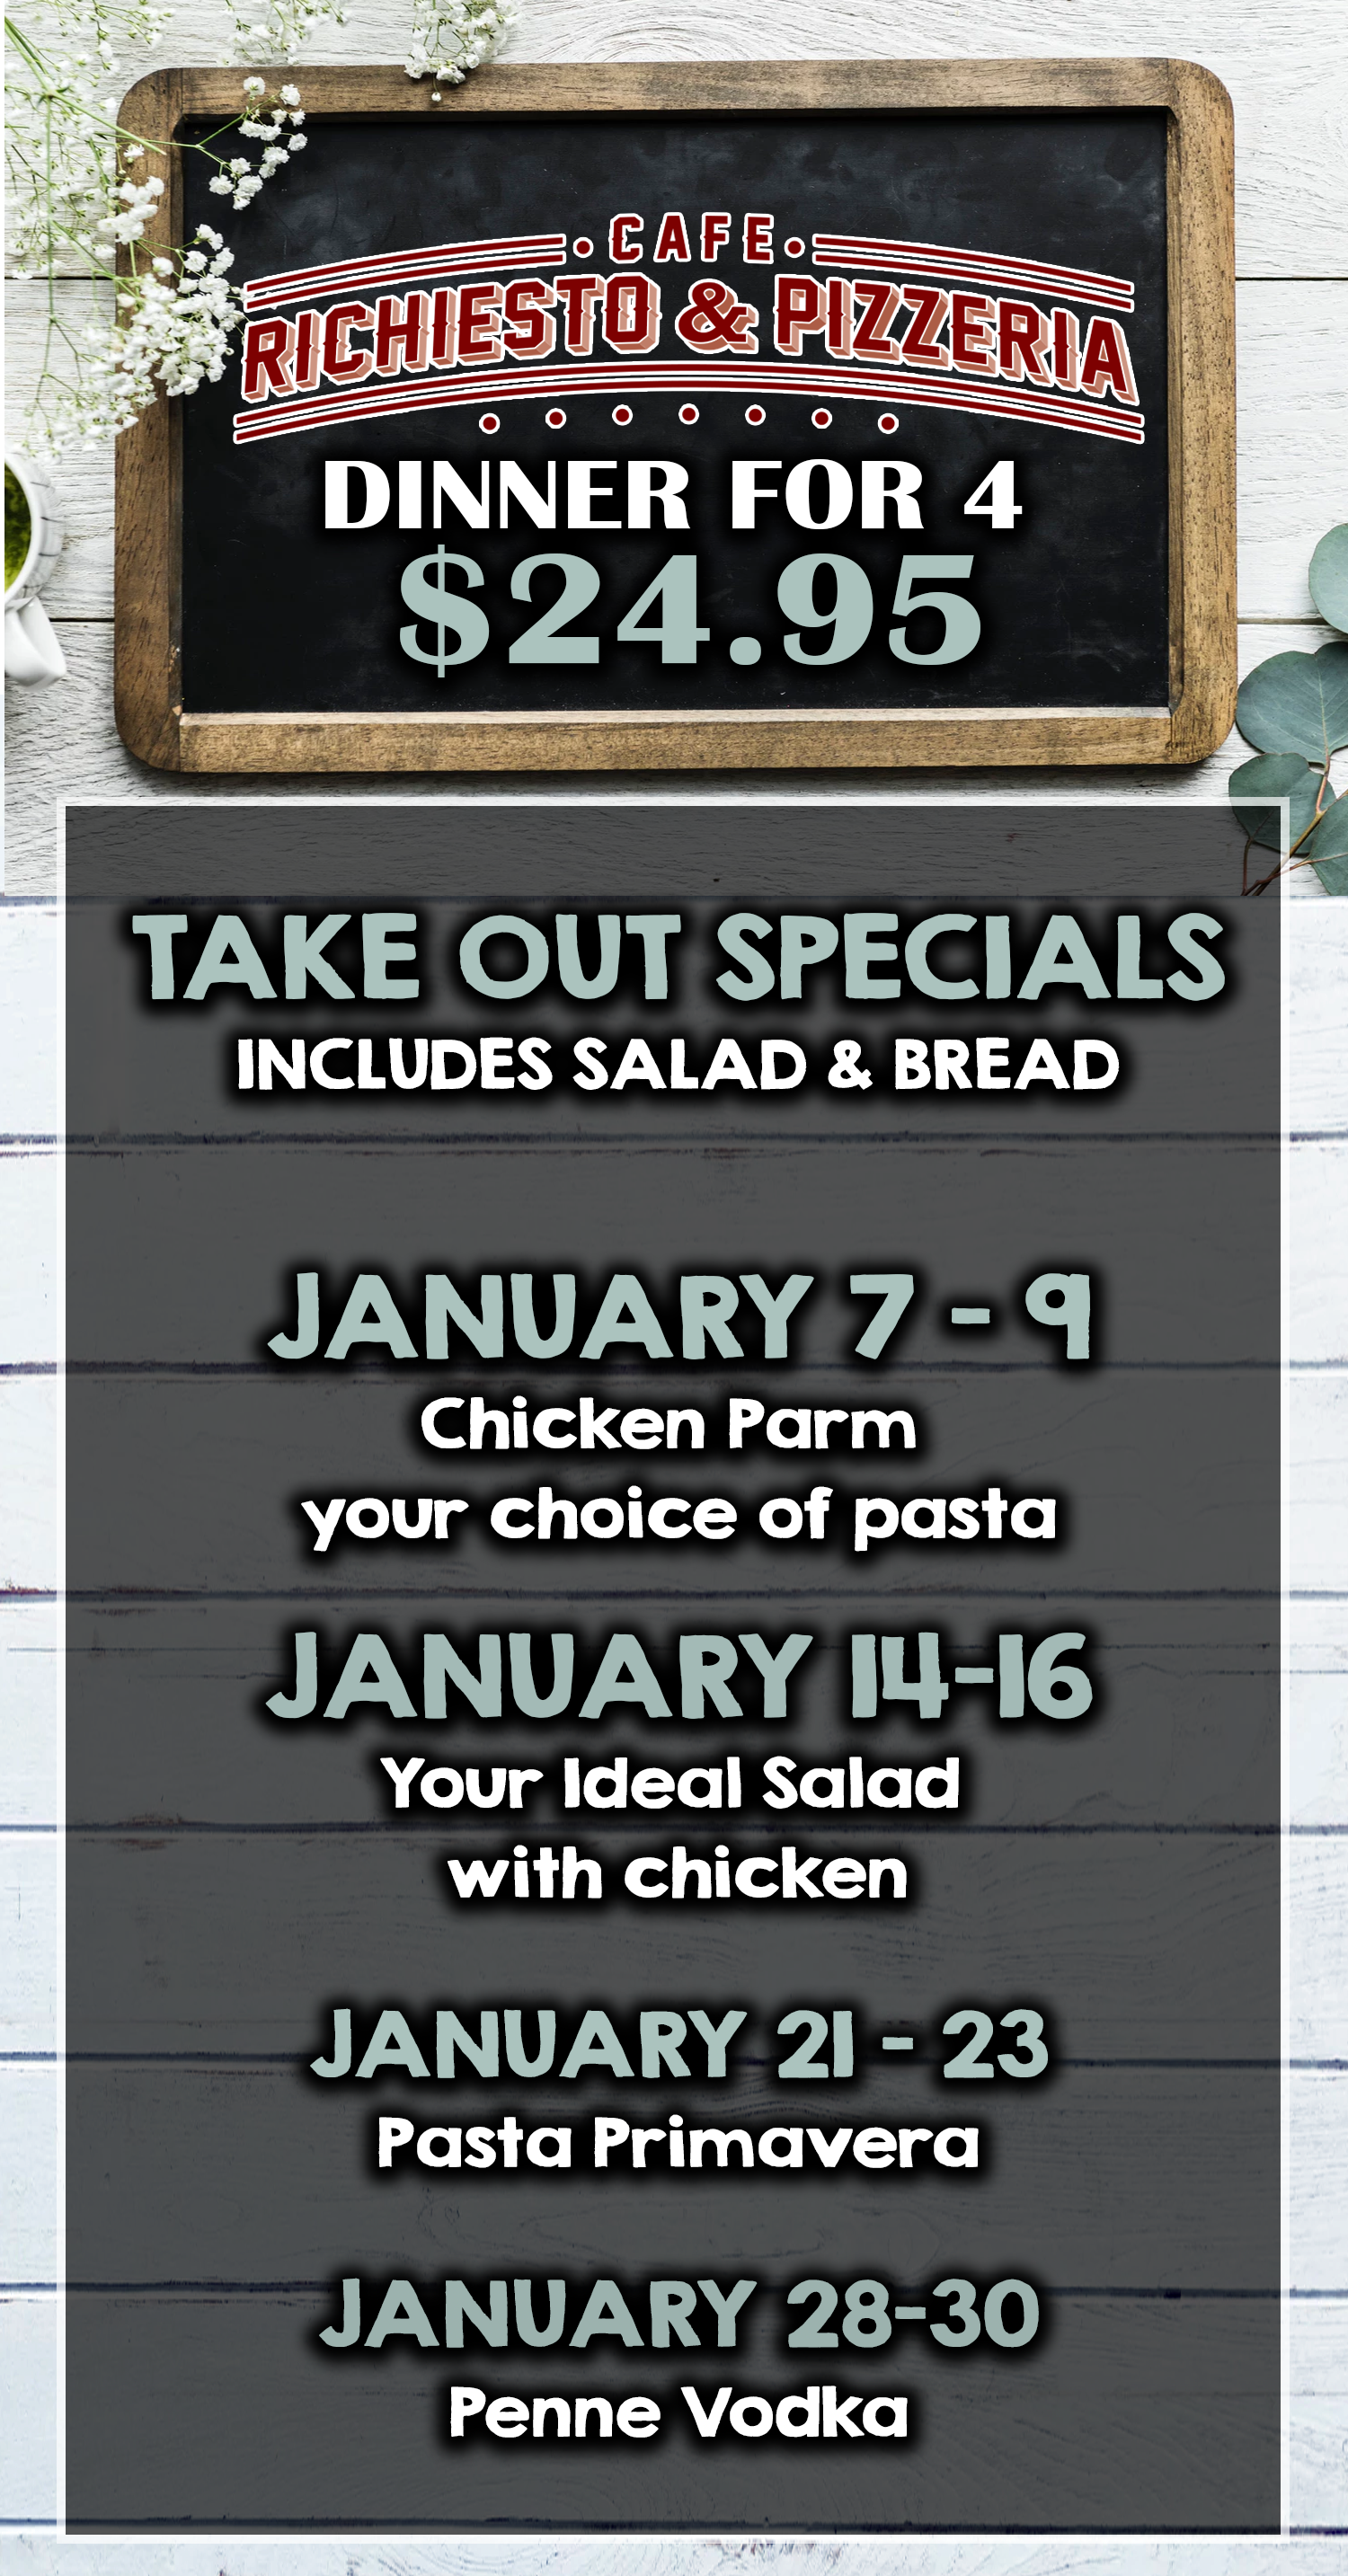 take out dinner for 4 $24.95